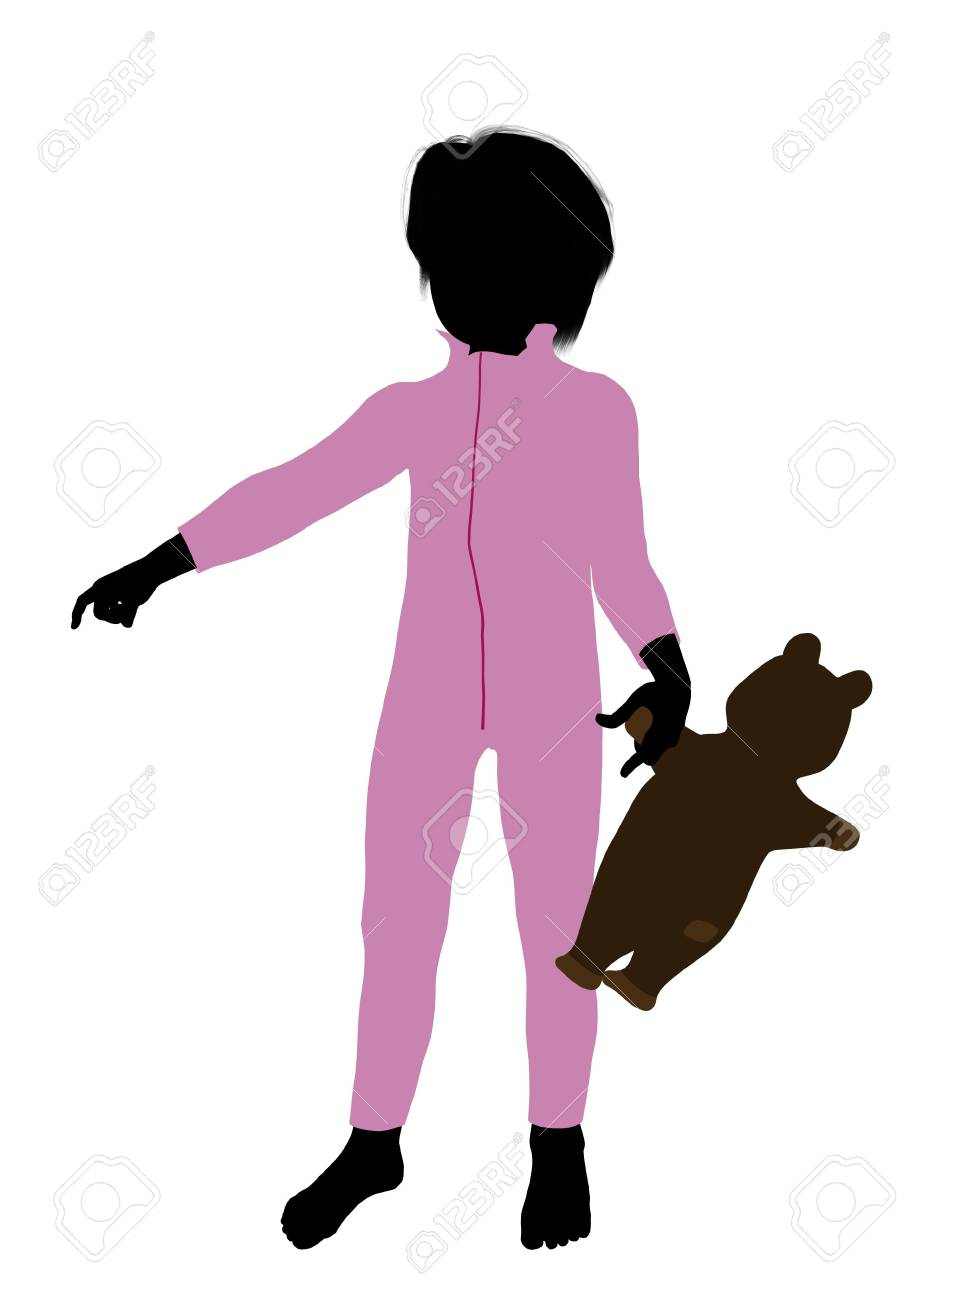 Peter of Peter Pan illustration silhouette on a white background Stock Illustration - 6586331